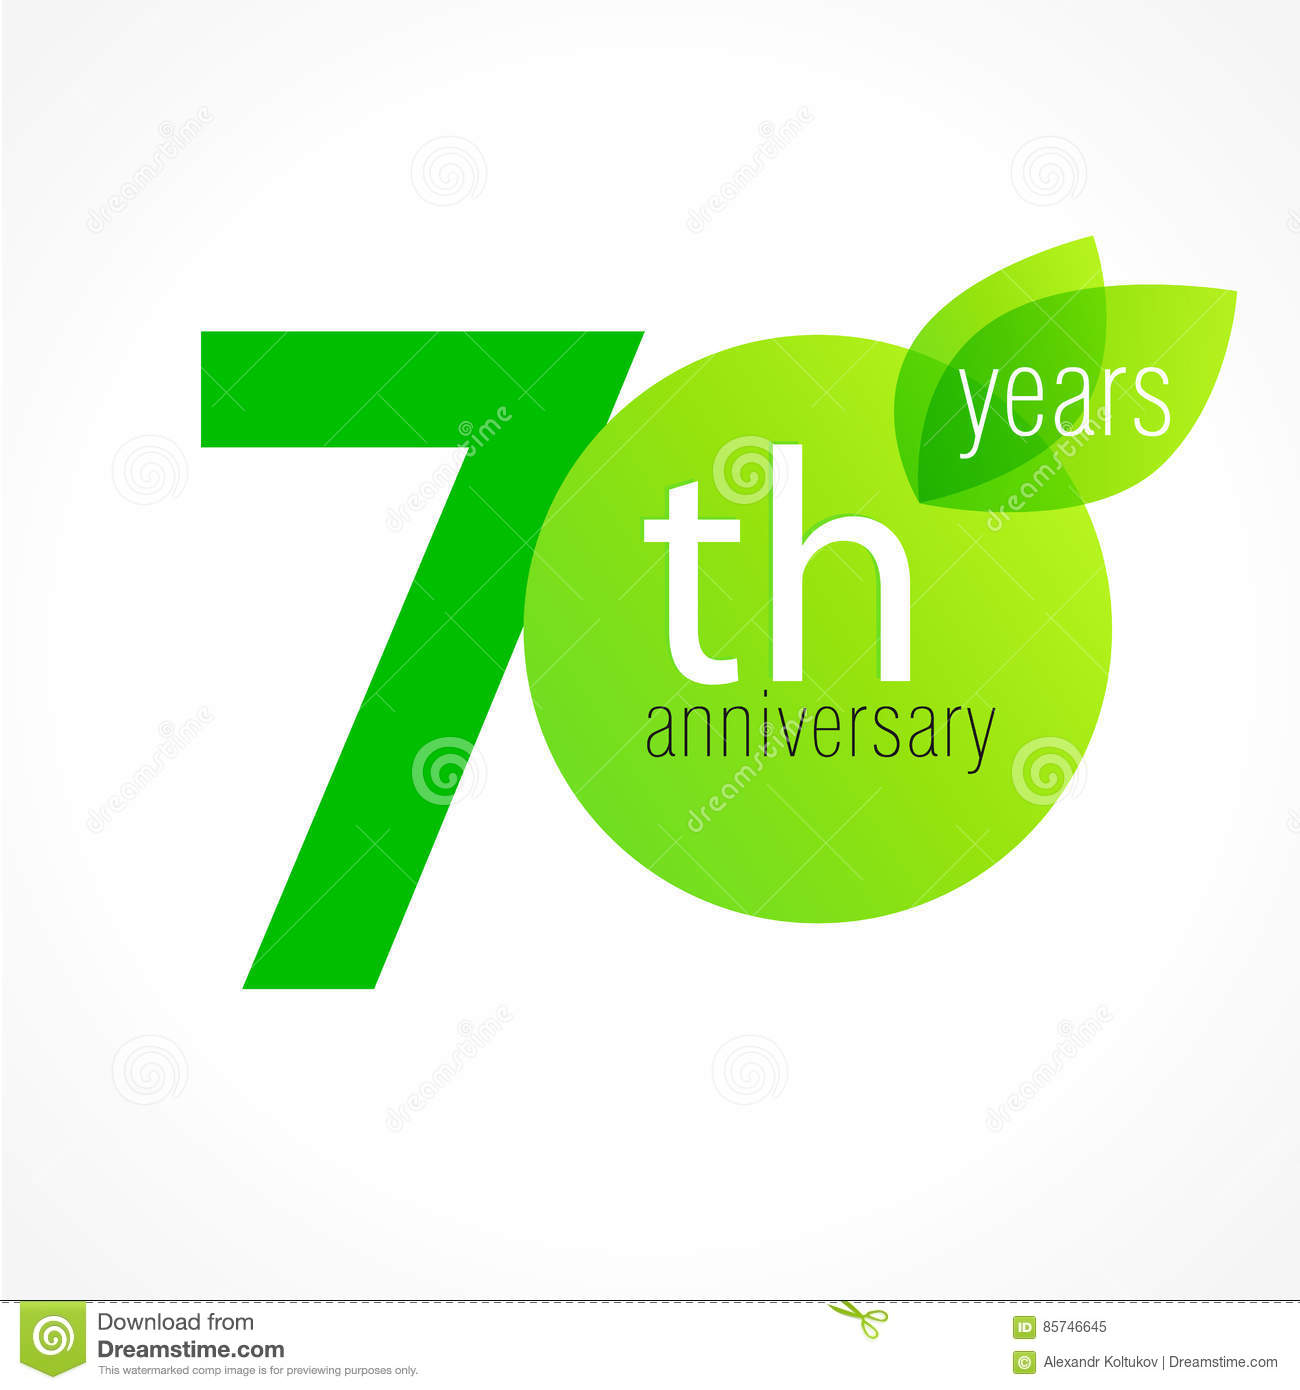 70 Years Old Celebrating Green Leaves Logo